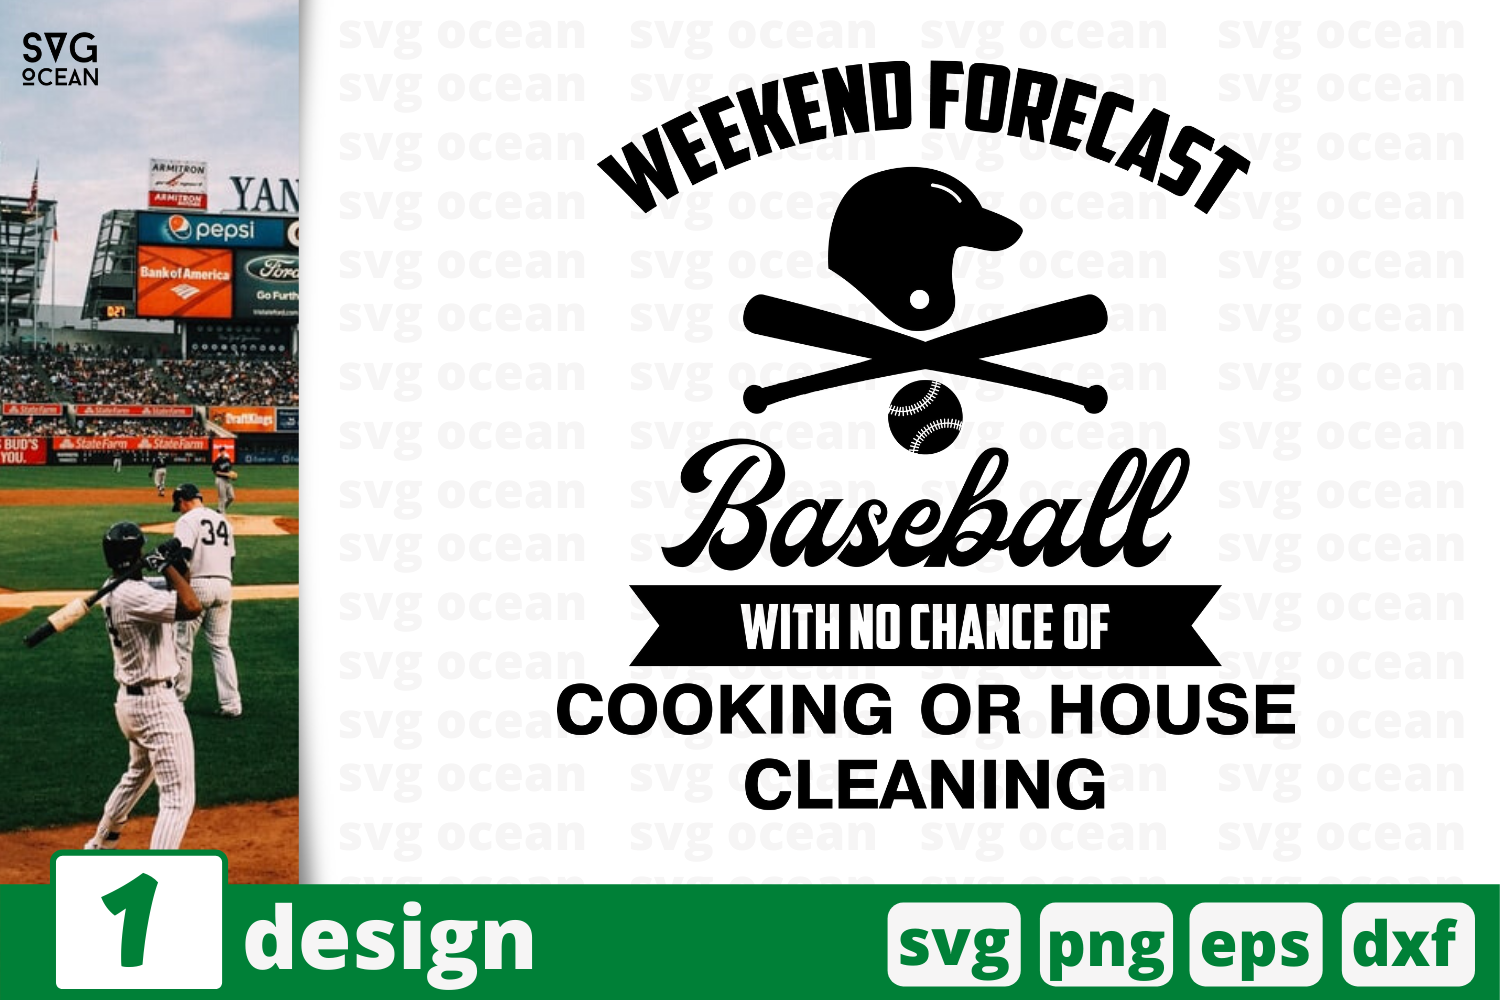 Download Free Weekend Forevast Baseball Quote Graphic By Svgocean Creative for Cricut Explore, Silhouette and other cutting machines.